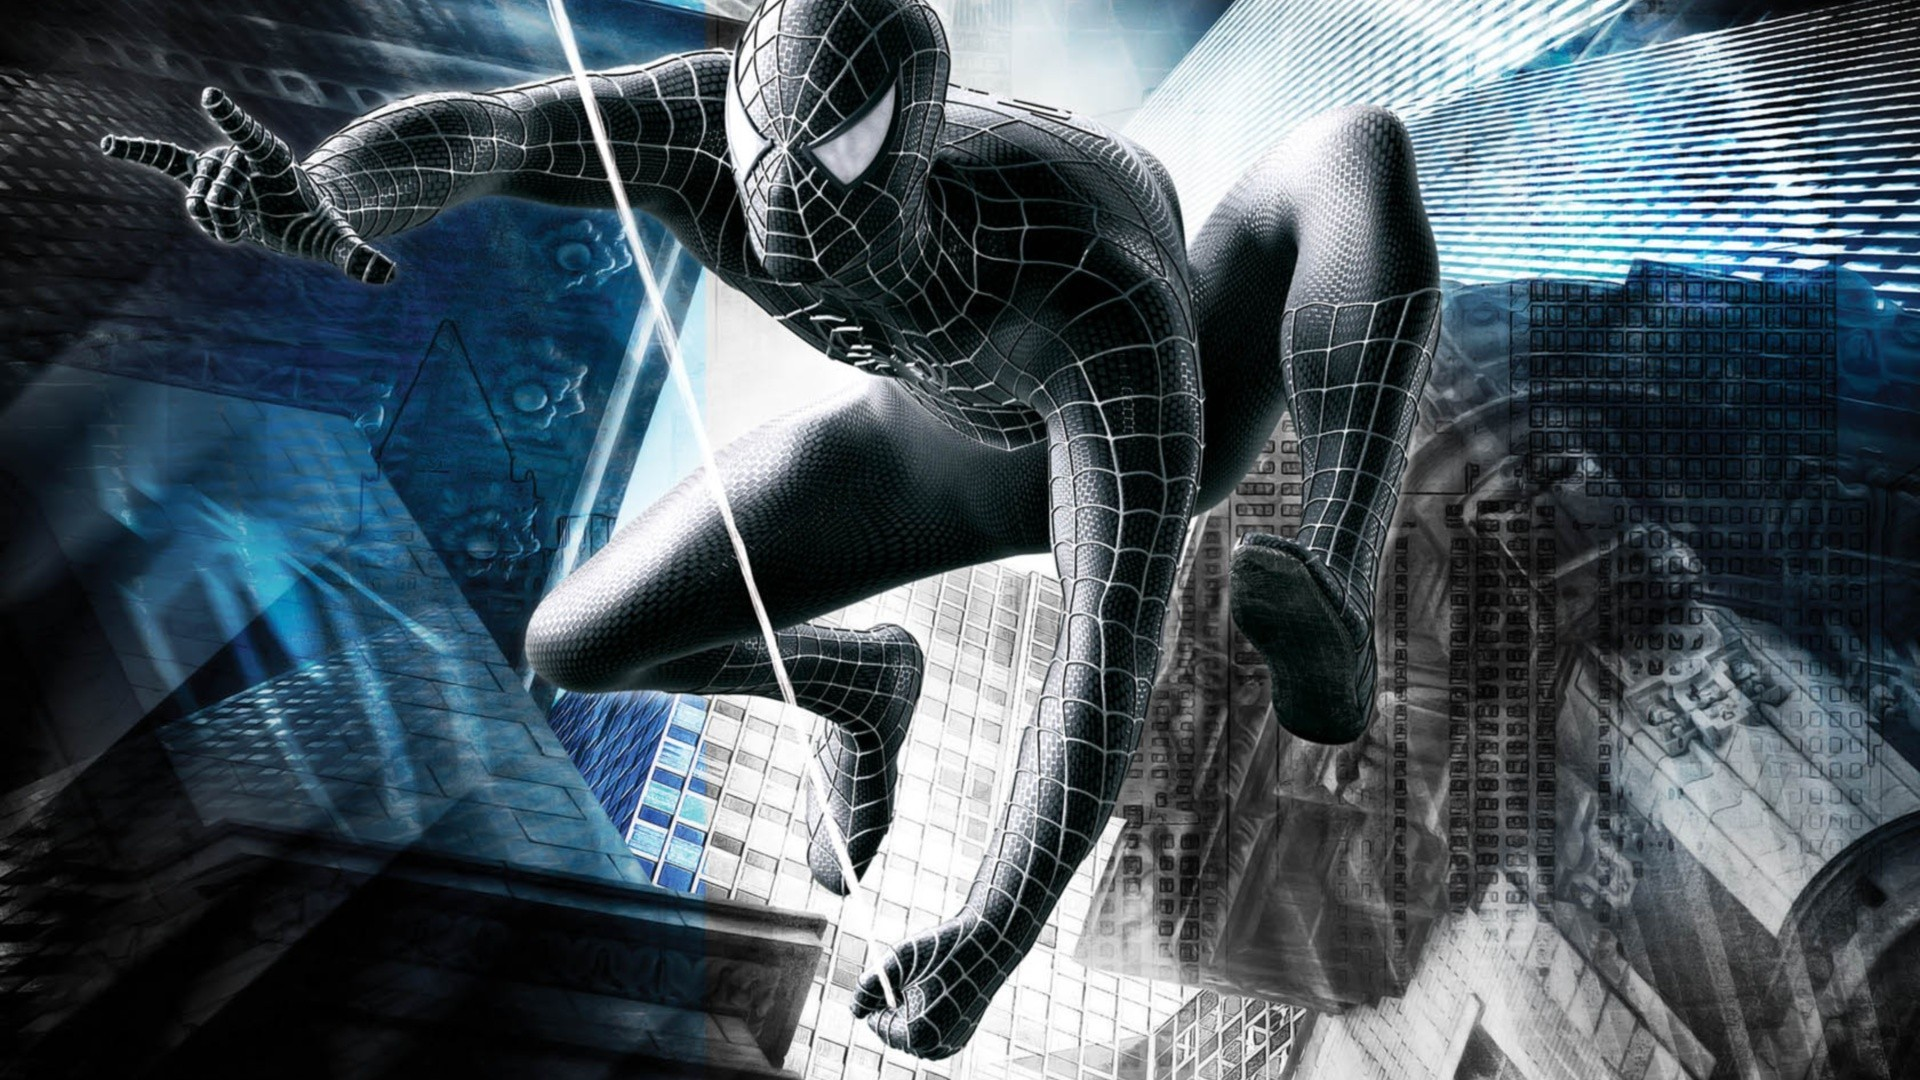 Free Download Spider Man 3 Wallpaper 149895 1920x1080 For Your